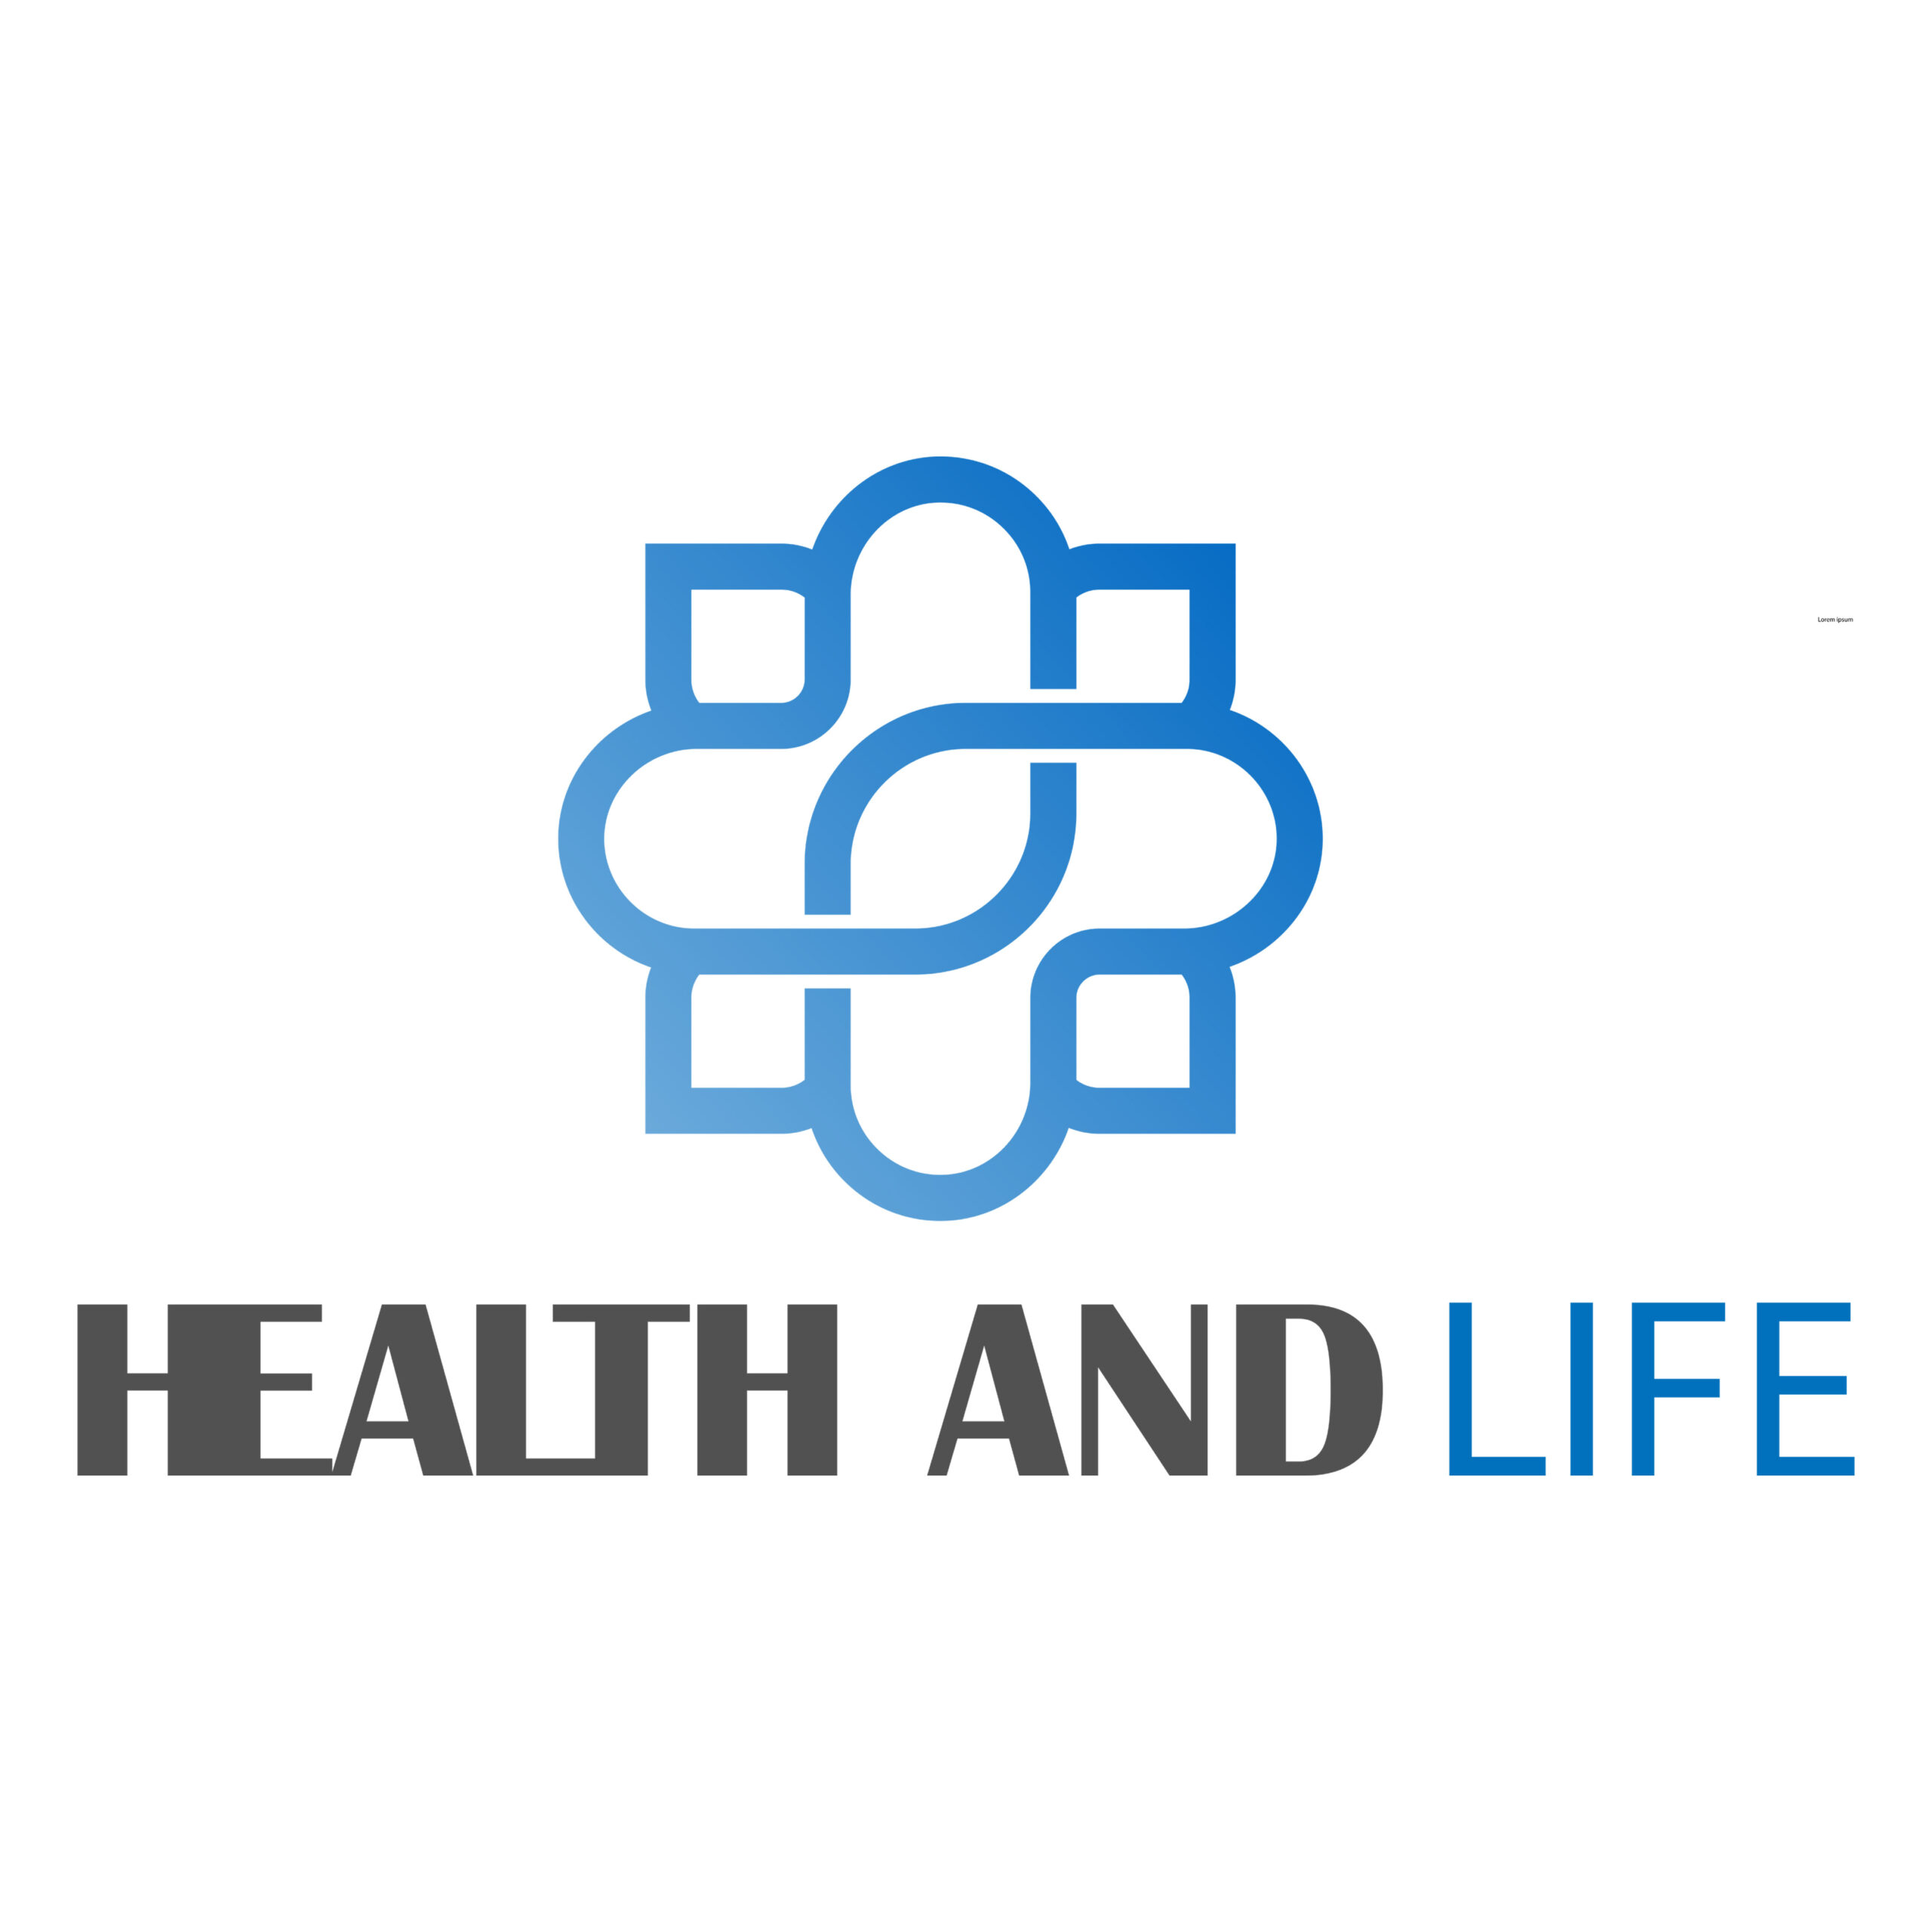 HEALTH AND LIFE WEBSITE MASTER